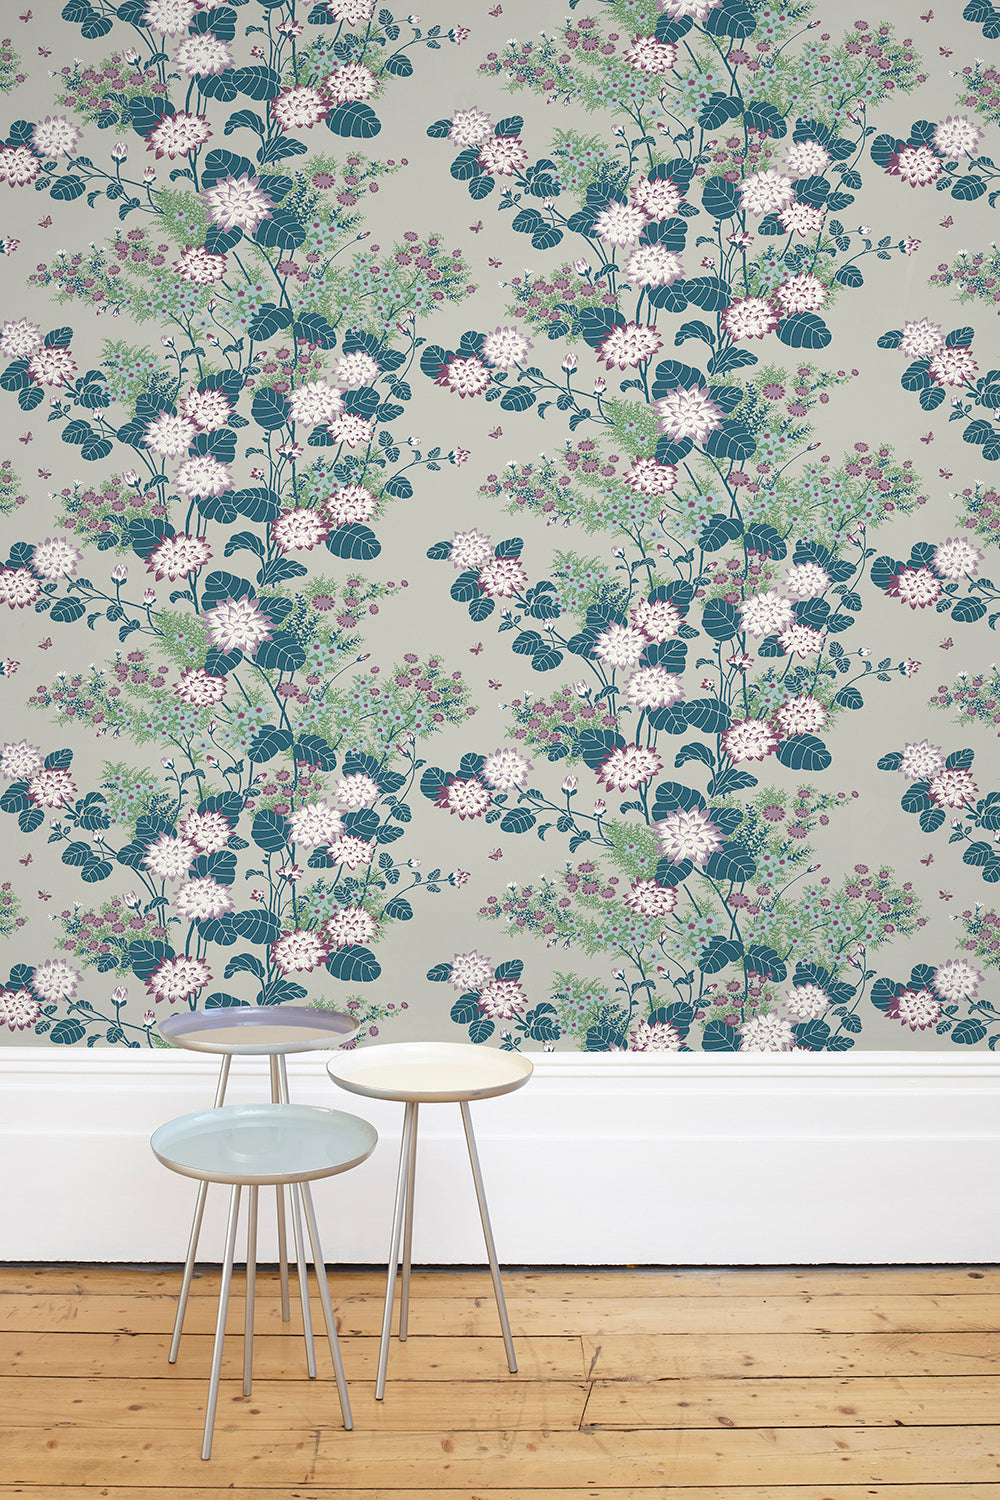 Chinese Floral Wallpaper Pewter Florence Broadhurst